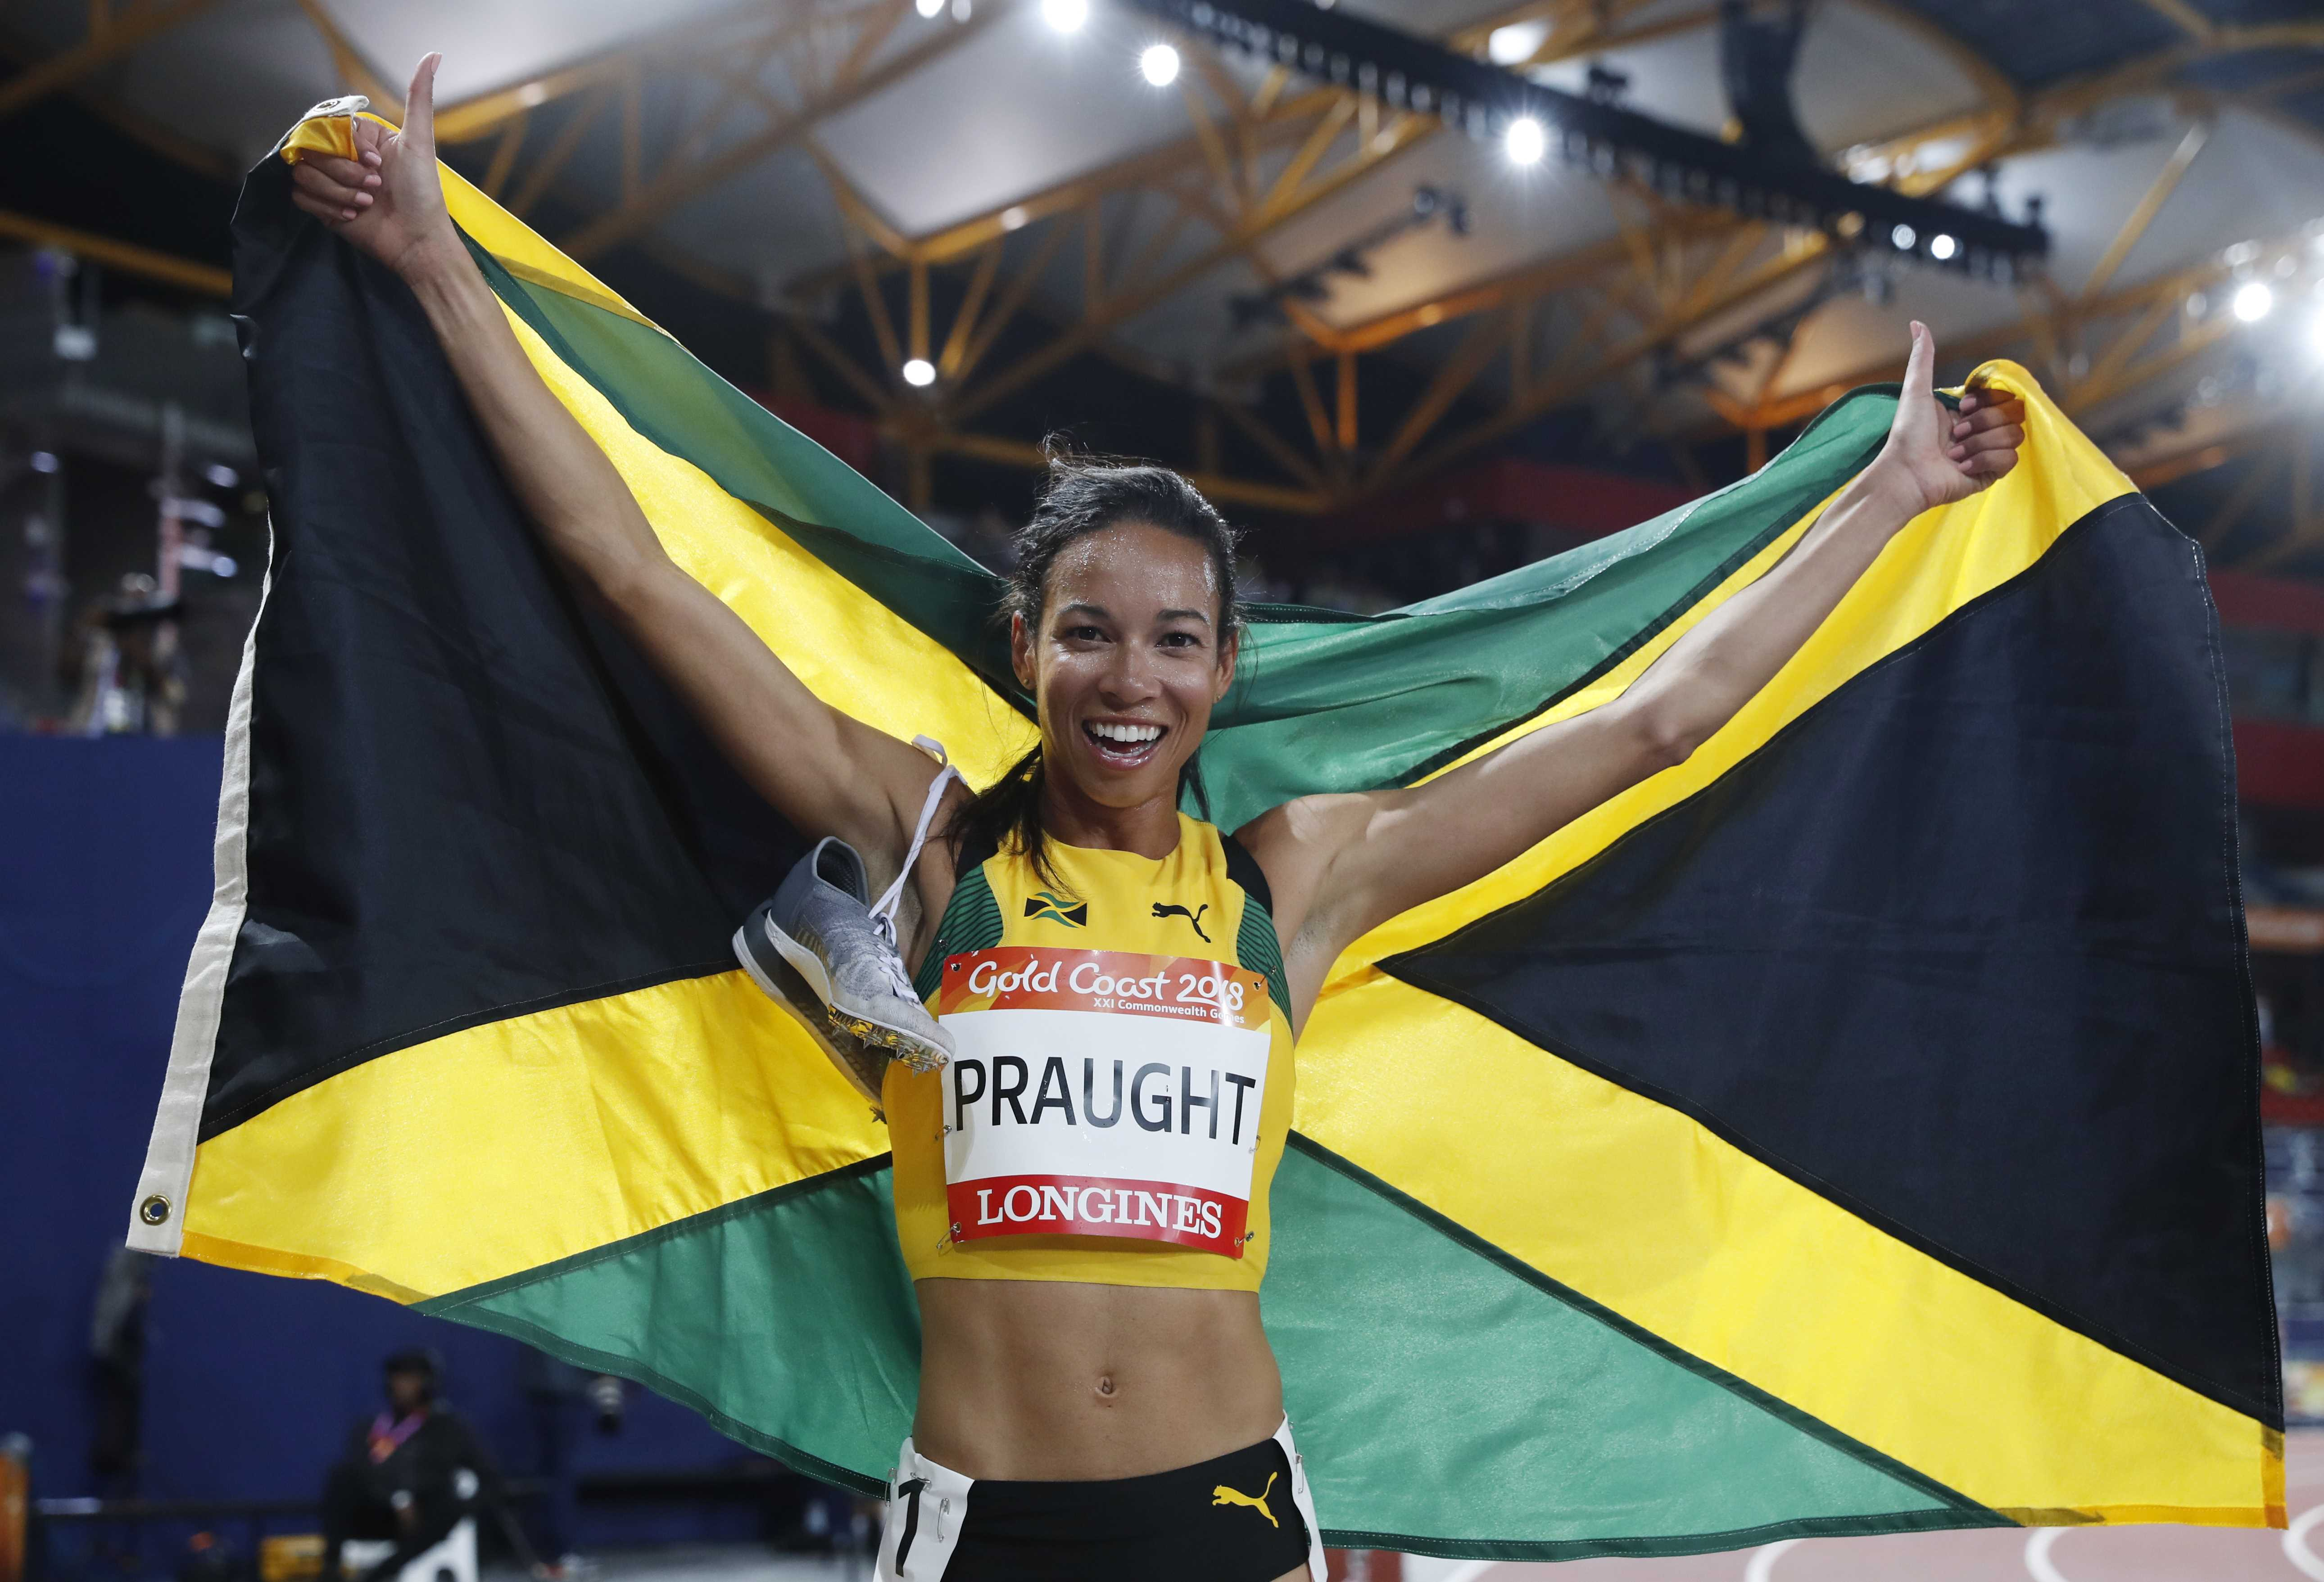 Commonwealth Games: Praught takes gold as Jamaica's women stand up